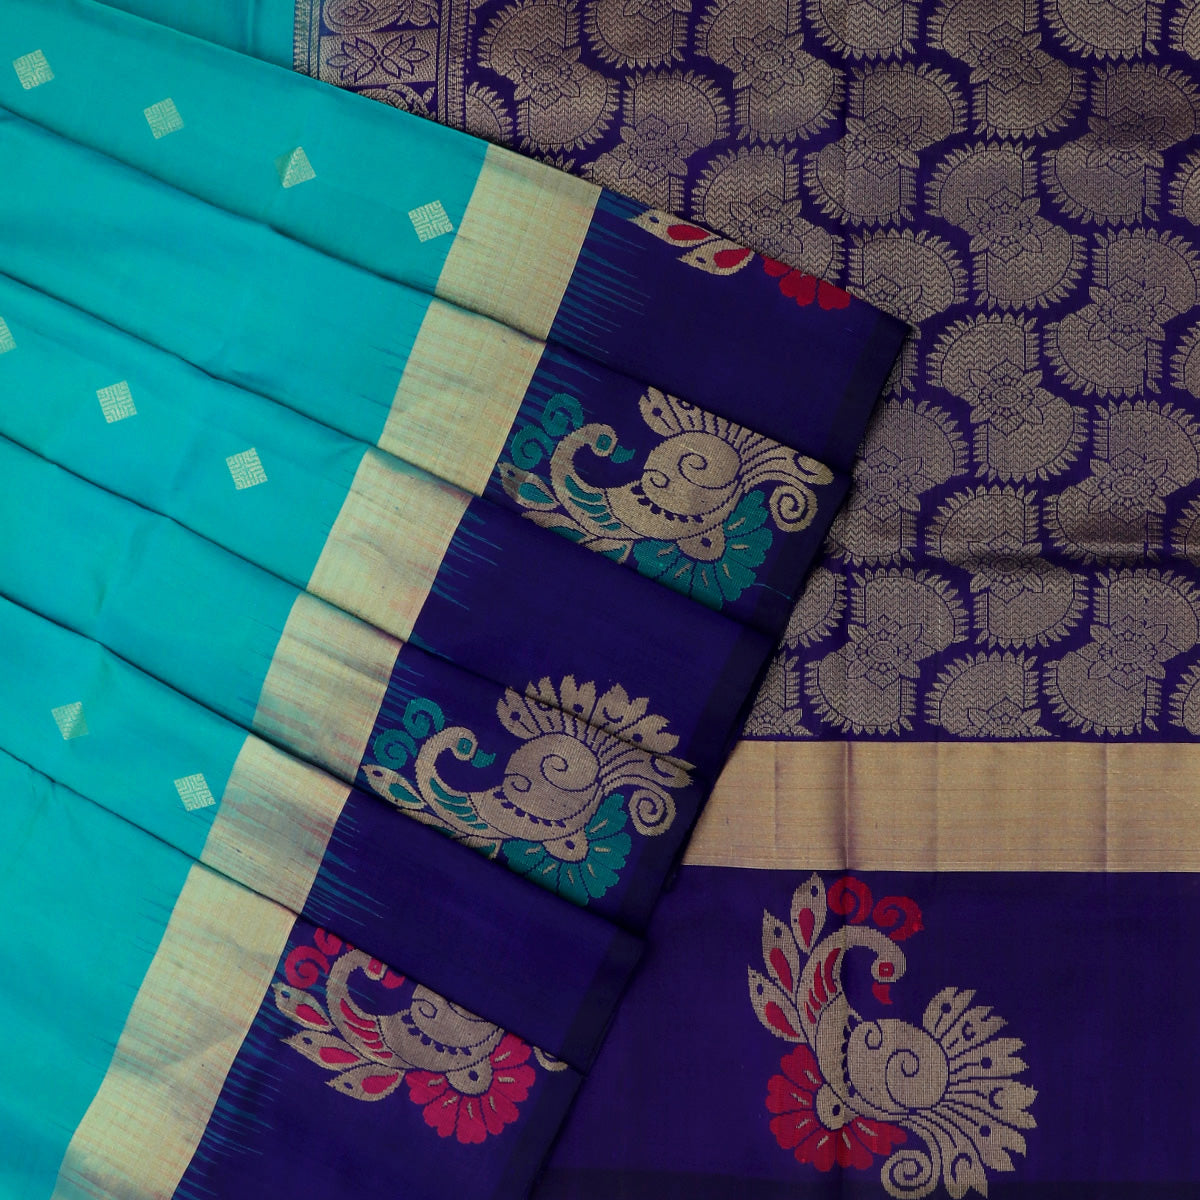 Soft Silk Saree Teal Blue and Blue with Diamond Butta and Annam  border